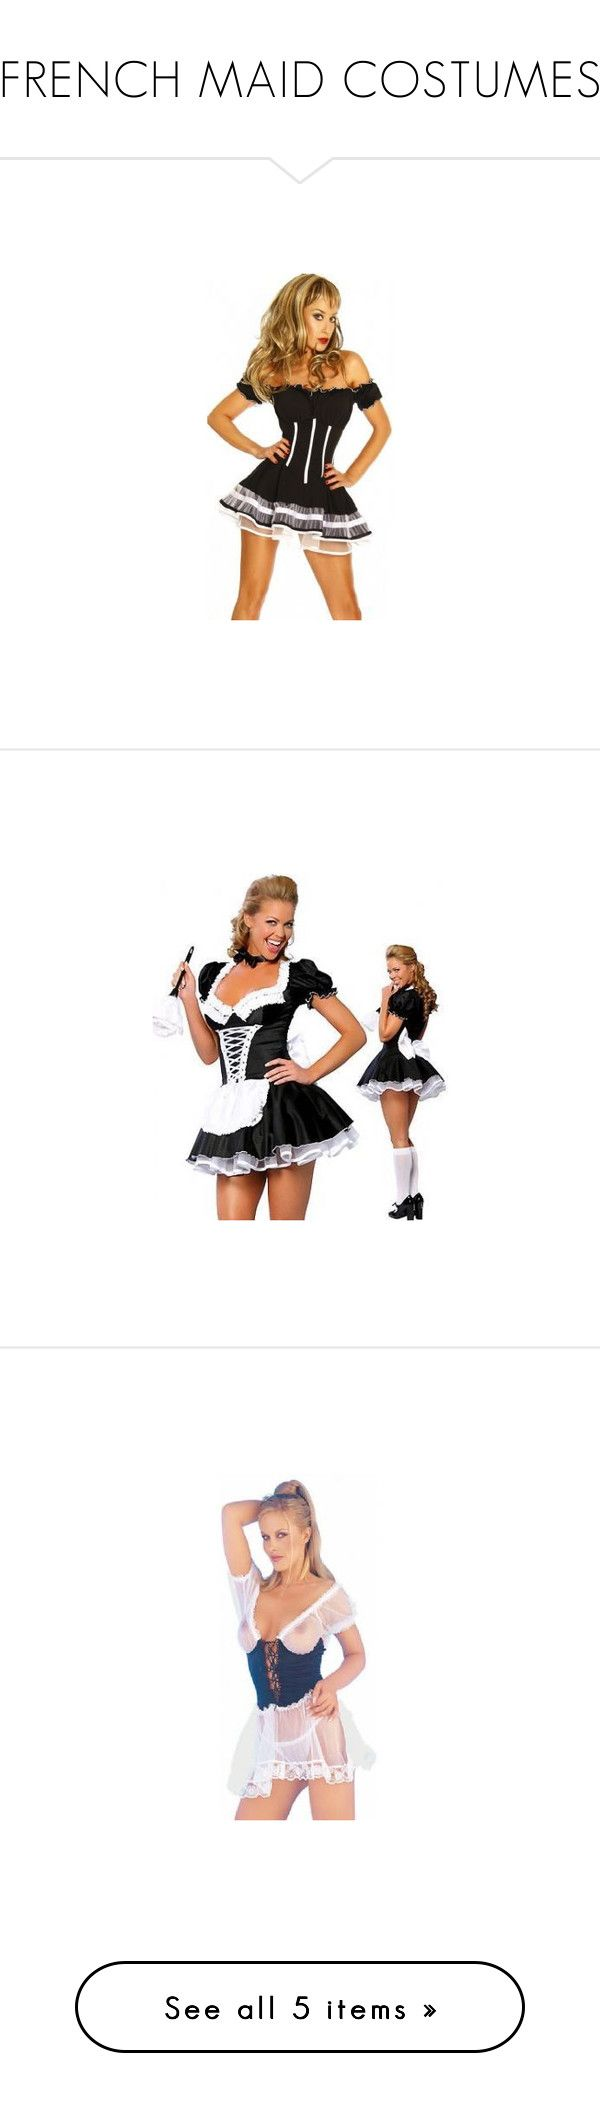 """""""FRENCH MAID COSTUMES"""" by lingeriehypermarket ❤ liked on Polyvore featuring costumes, sexy maid halloween costume, fancy halloween costumes, black halloween costumes, maid costume, maid halloween costume, french maid costume, sexy maid costume, black and white costume and sexy wench costume"""